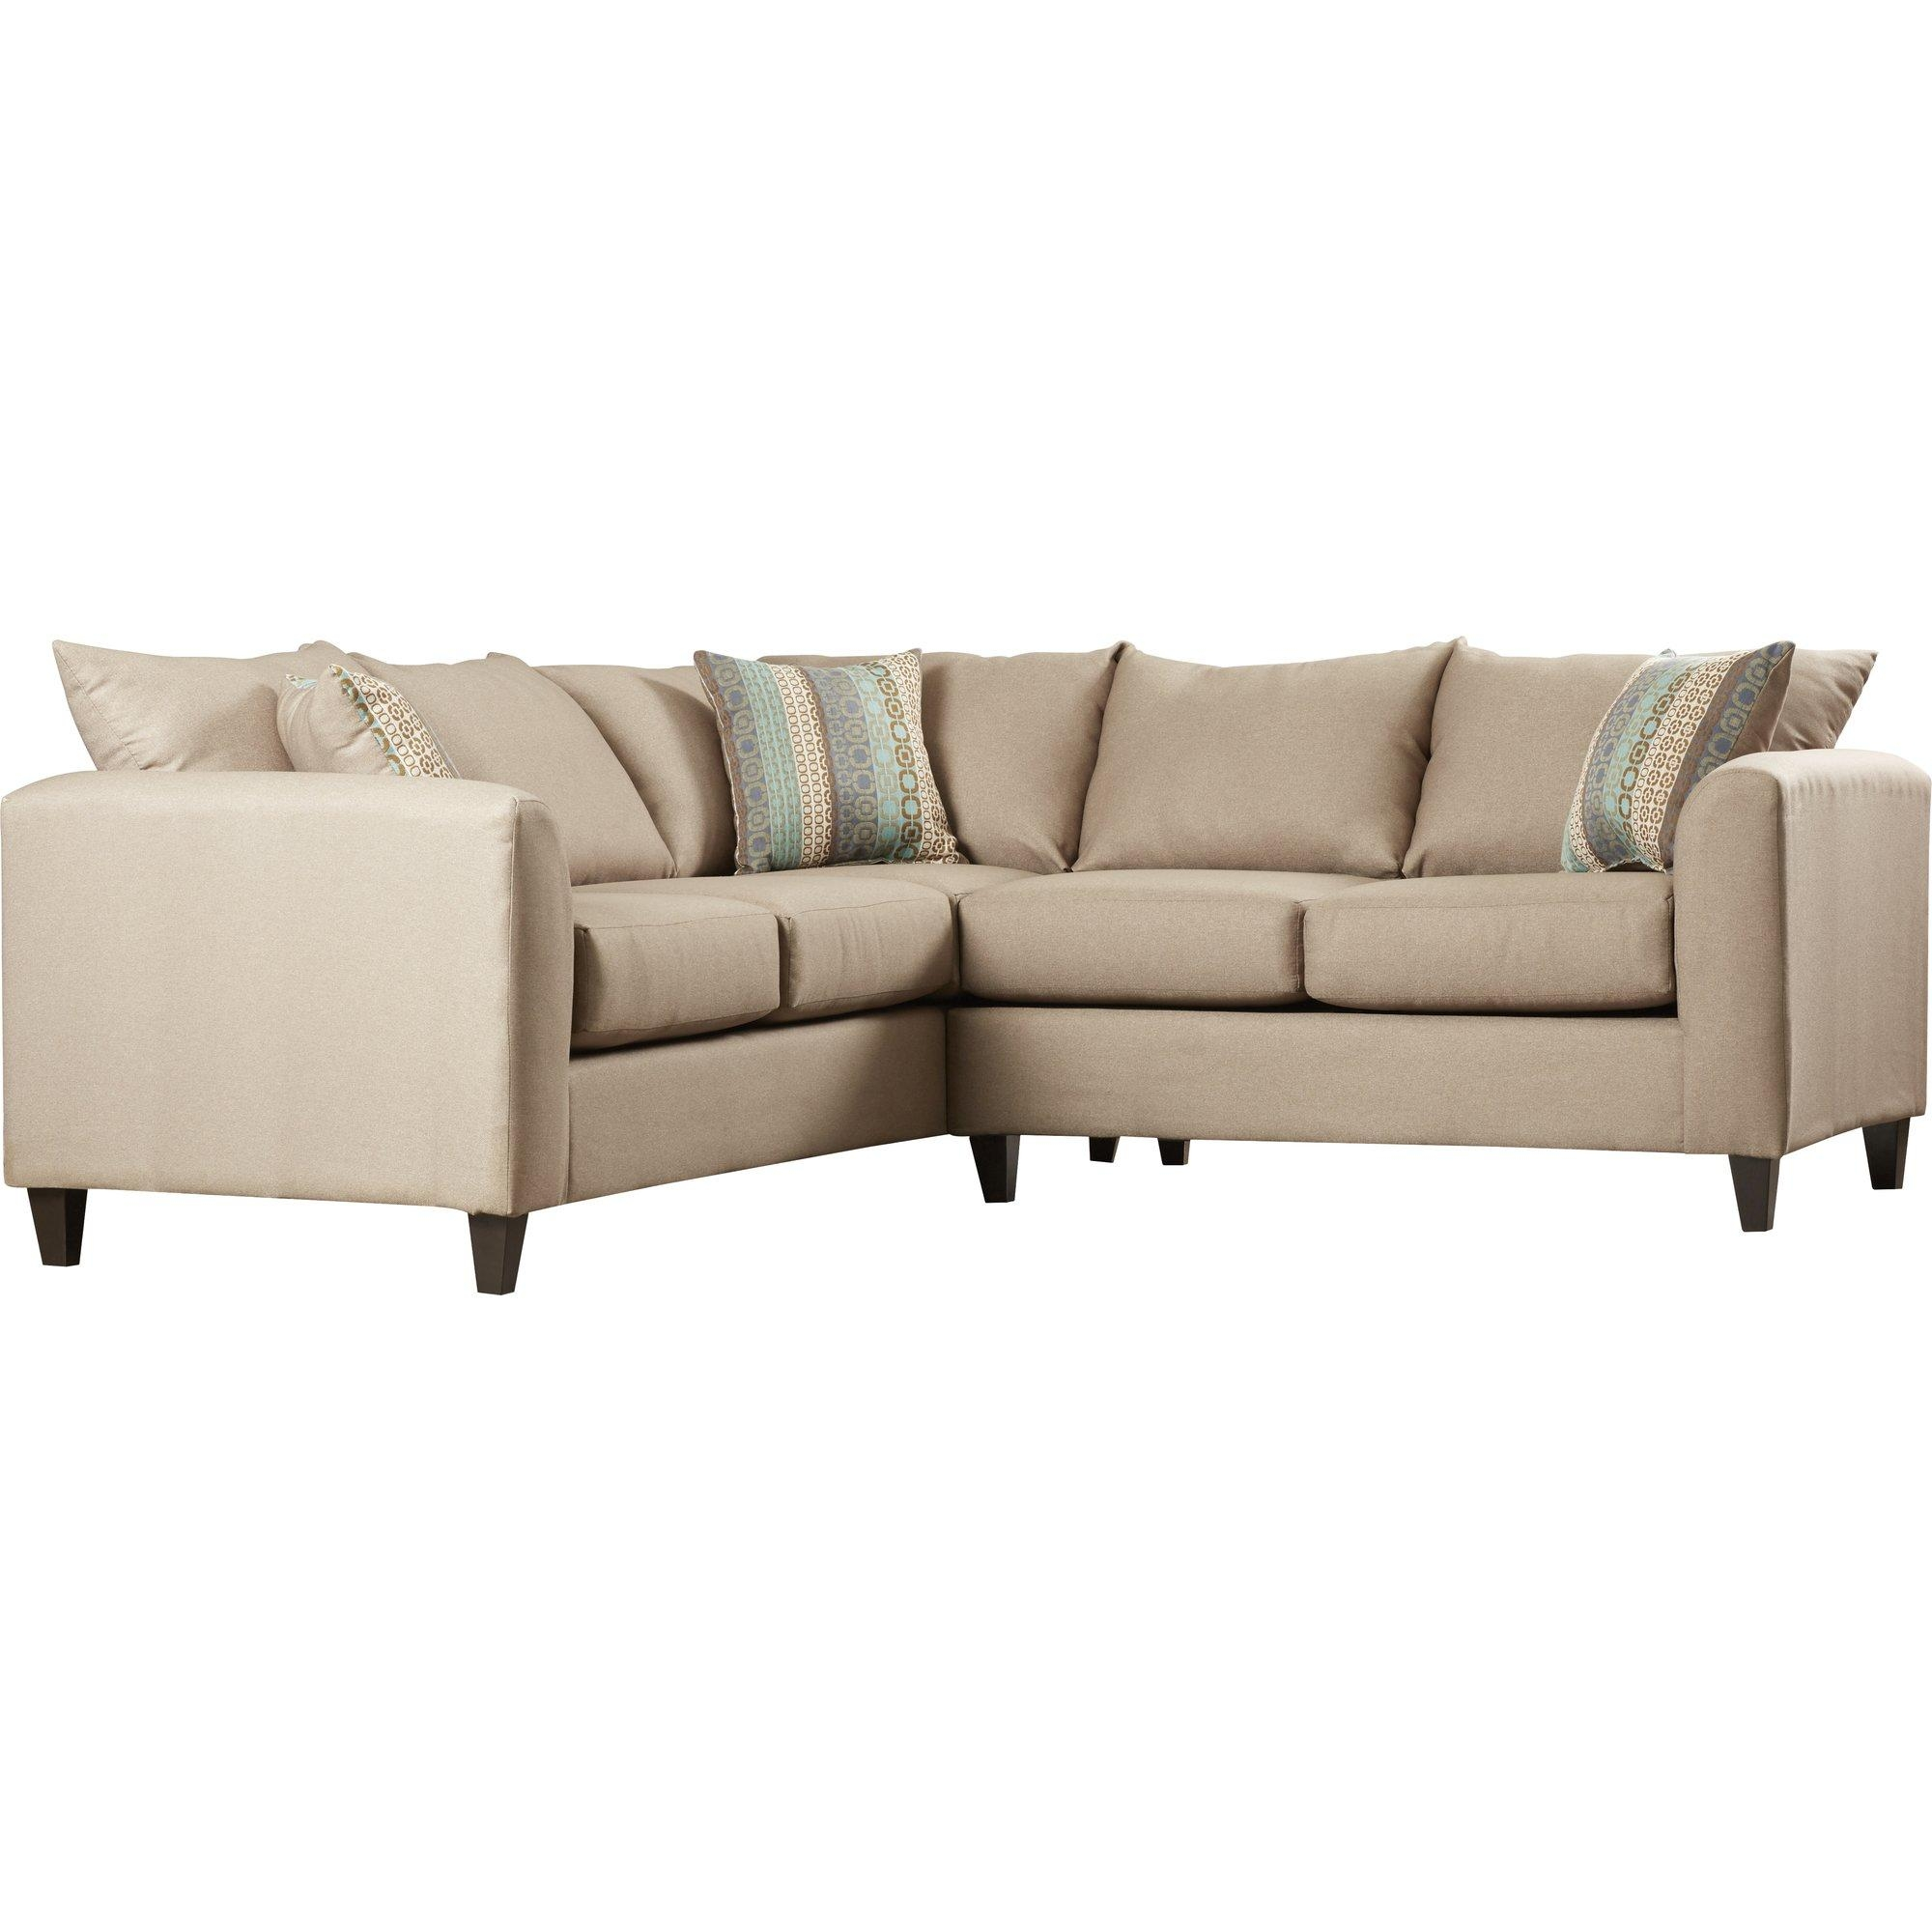 Beachcrest Home Serta Sectional & Reviews | Wayfair Supply Within Serta Sectional (Image 7 of 20)